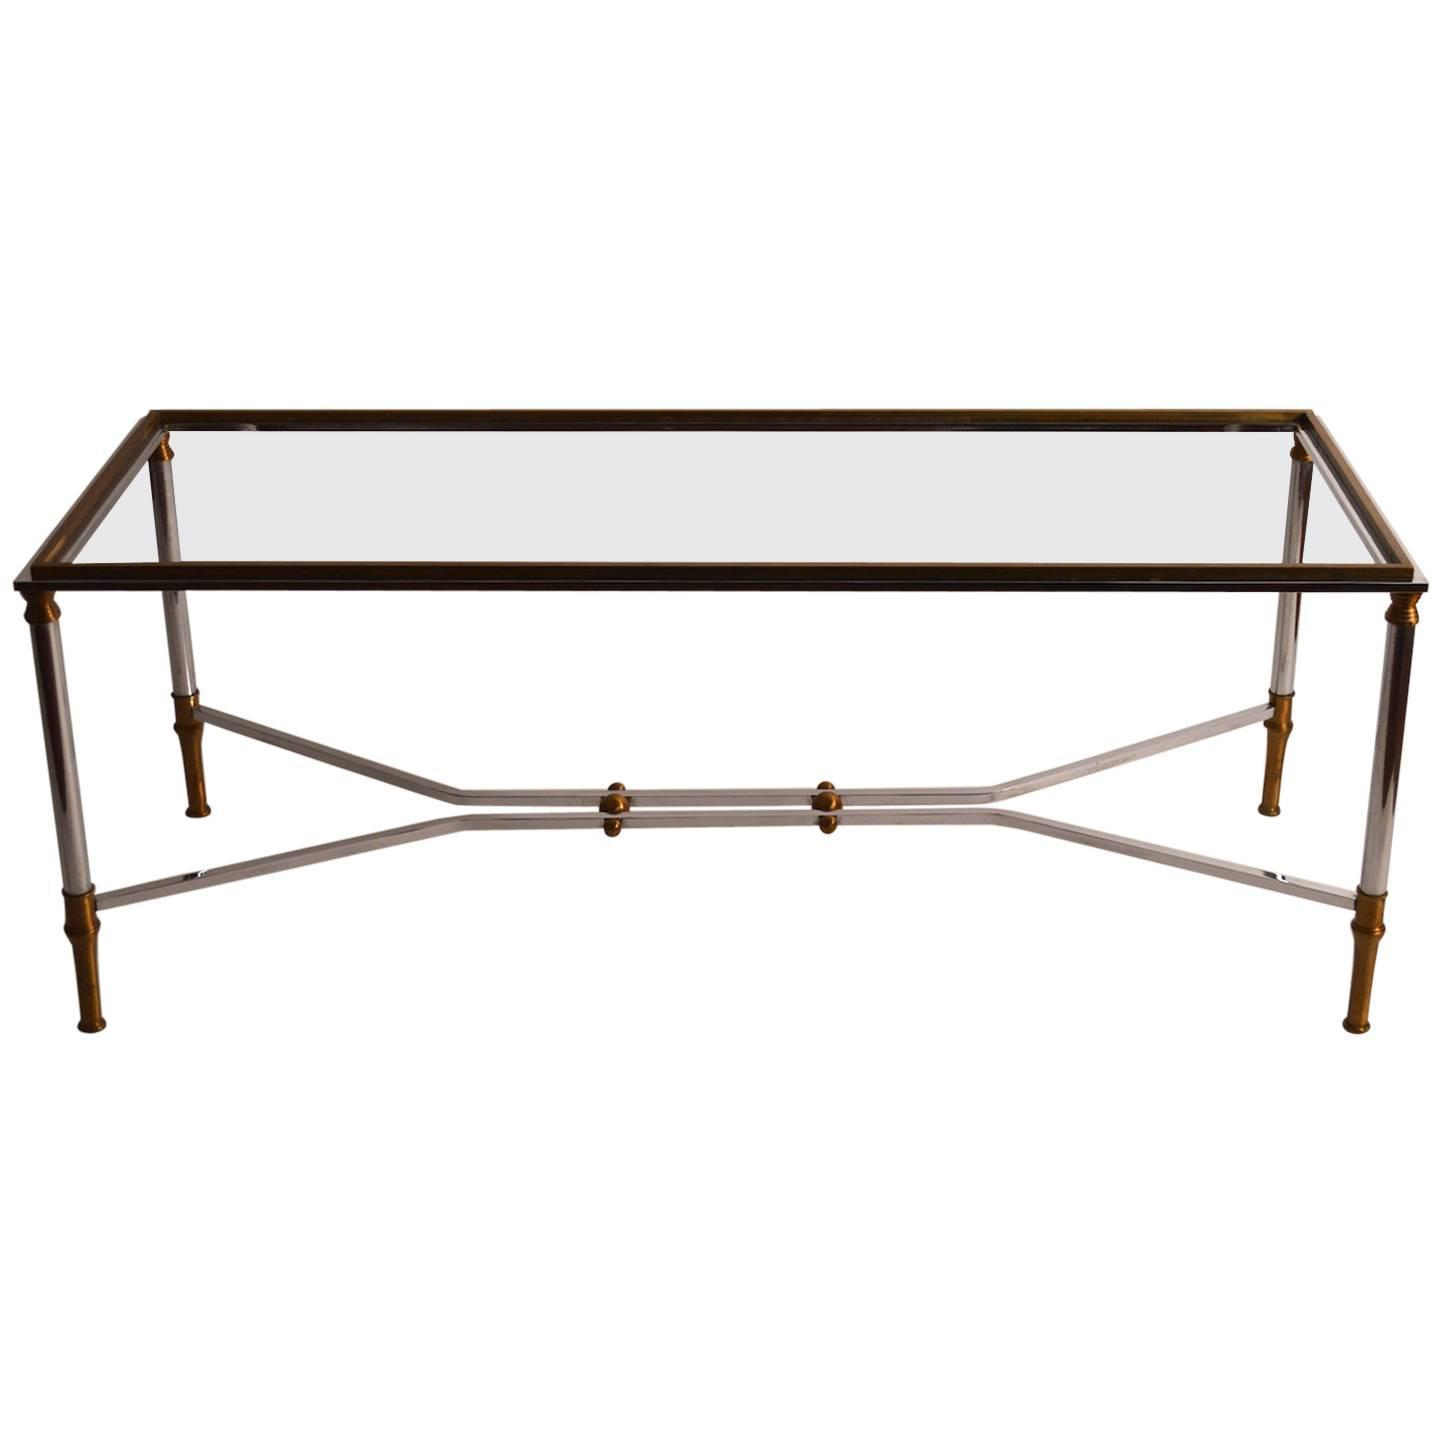 Chrome And Brass Coffee Table By Maison Jansen At 1stdibs